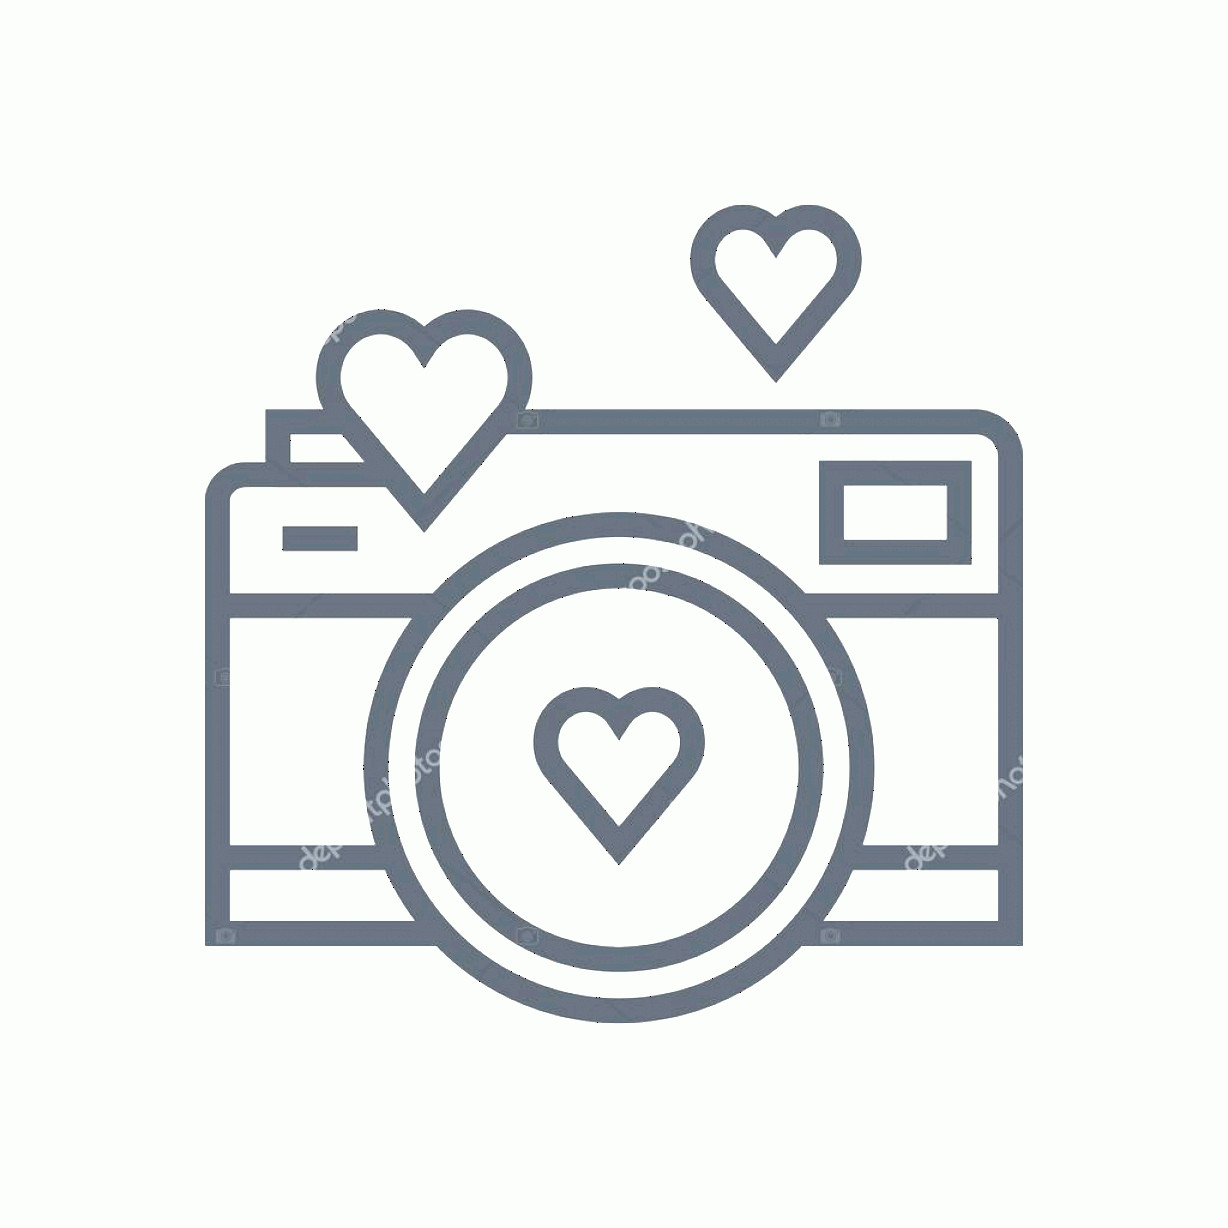 Camera Heart Clip Art Vector: Stock Illustration Valentines Day Camera Icon